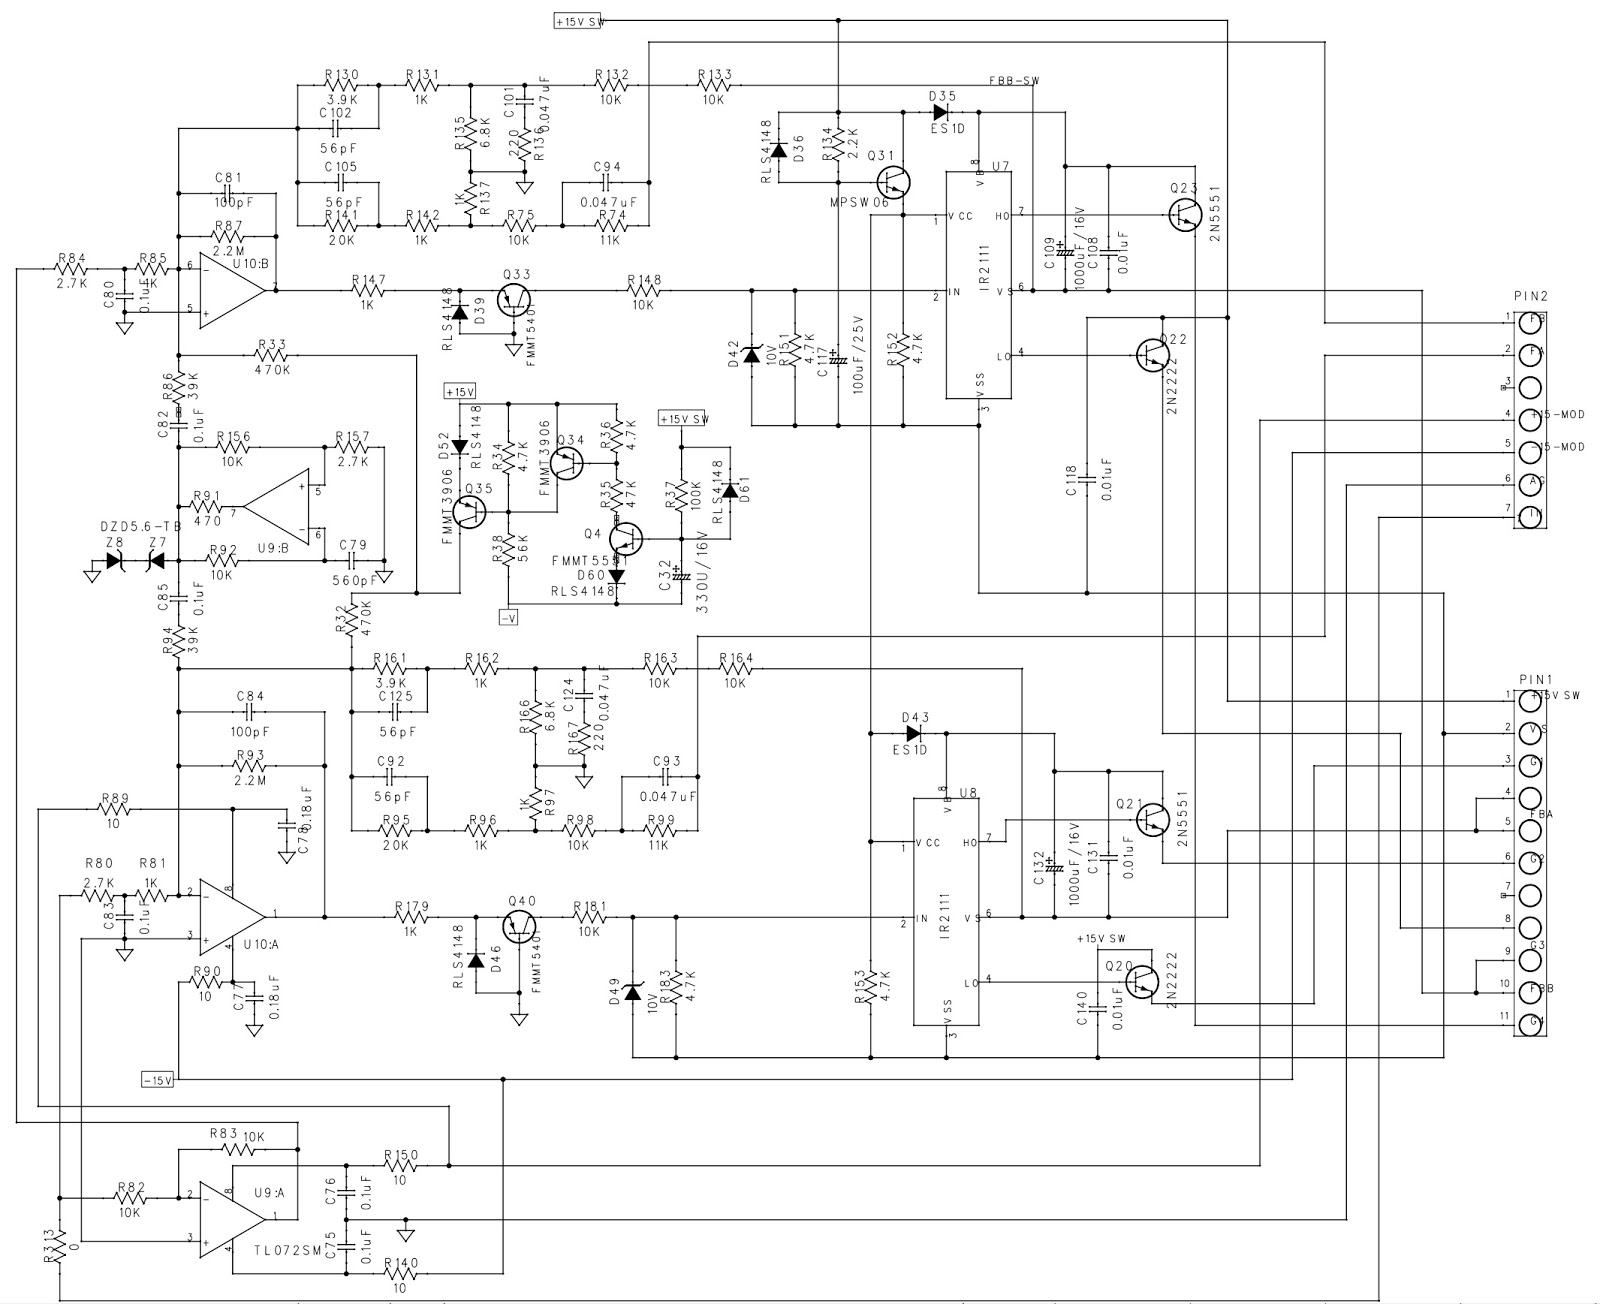 Jbl Bp 1200 Sub Wiring Diagram - jbl bp 1200 sub wiring ... Jbl Powered Subwoofer Schematic Diagram on